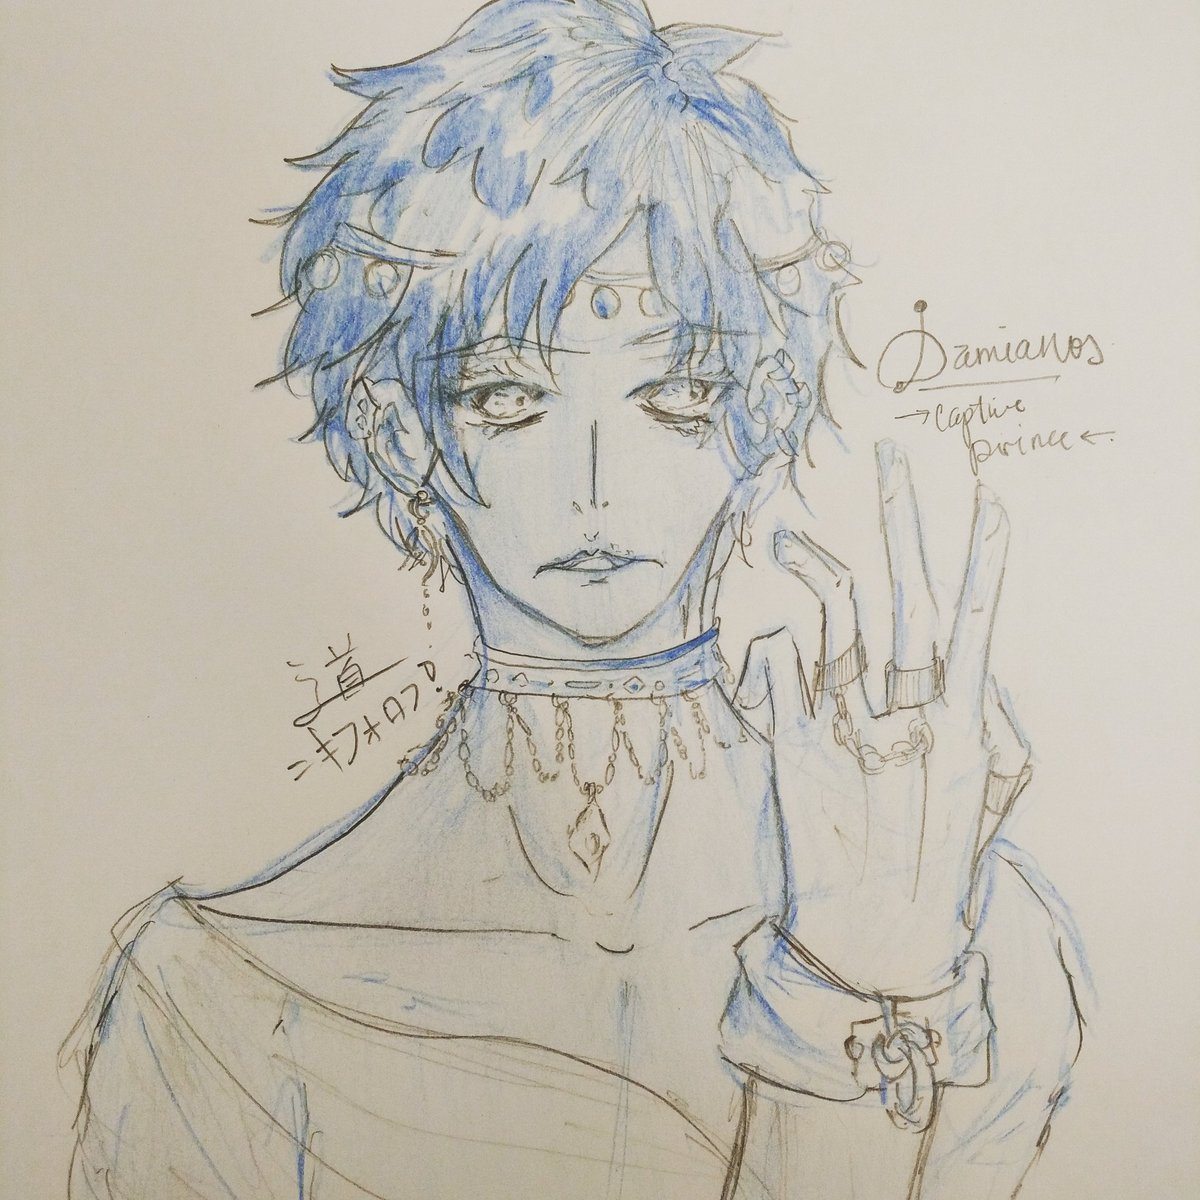 Damianos again looks kinda scary captiveprince from cspacat mangastyle fanart manga anime mangaka drawingart sketch pencilpic twitter com